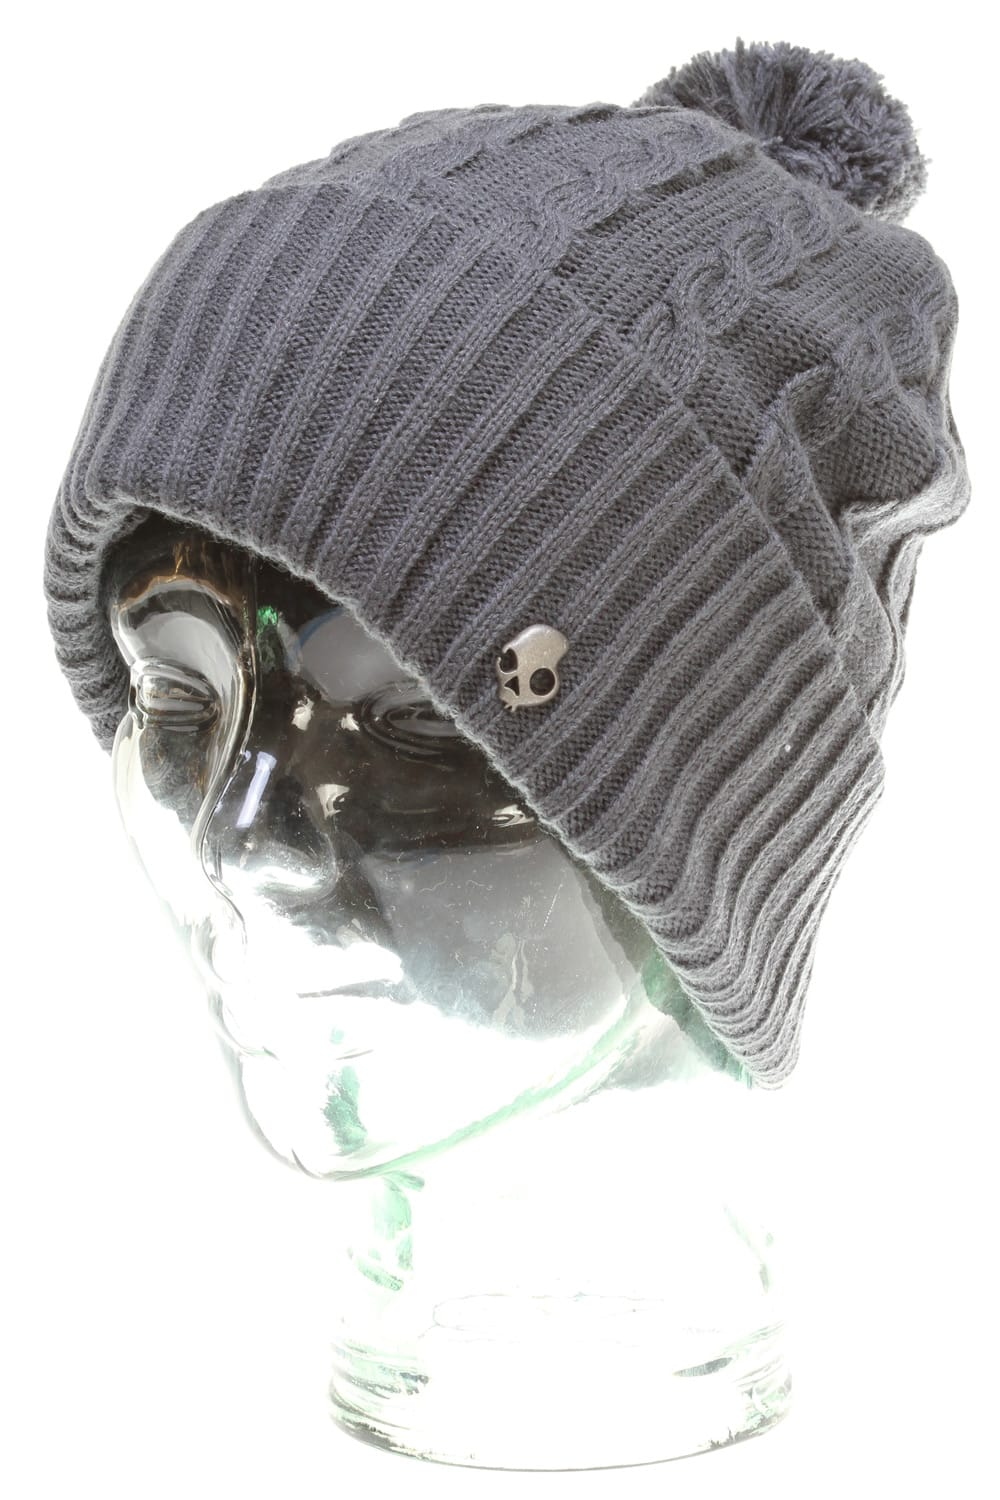 Shop for Skullcandy Orbit Audio Beanie Coal - Men's